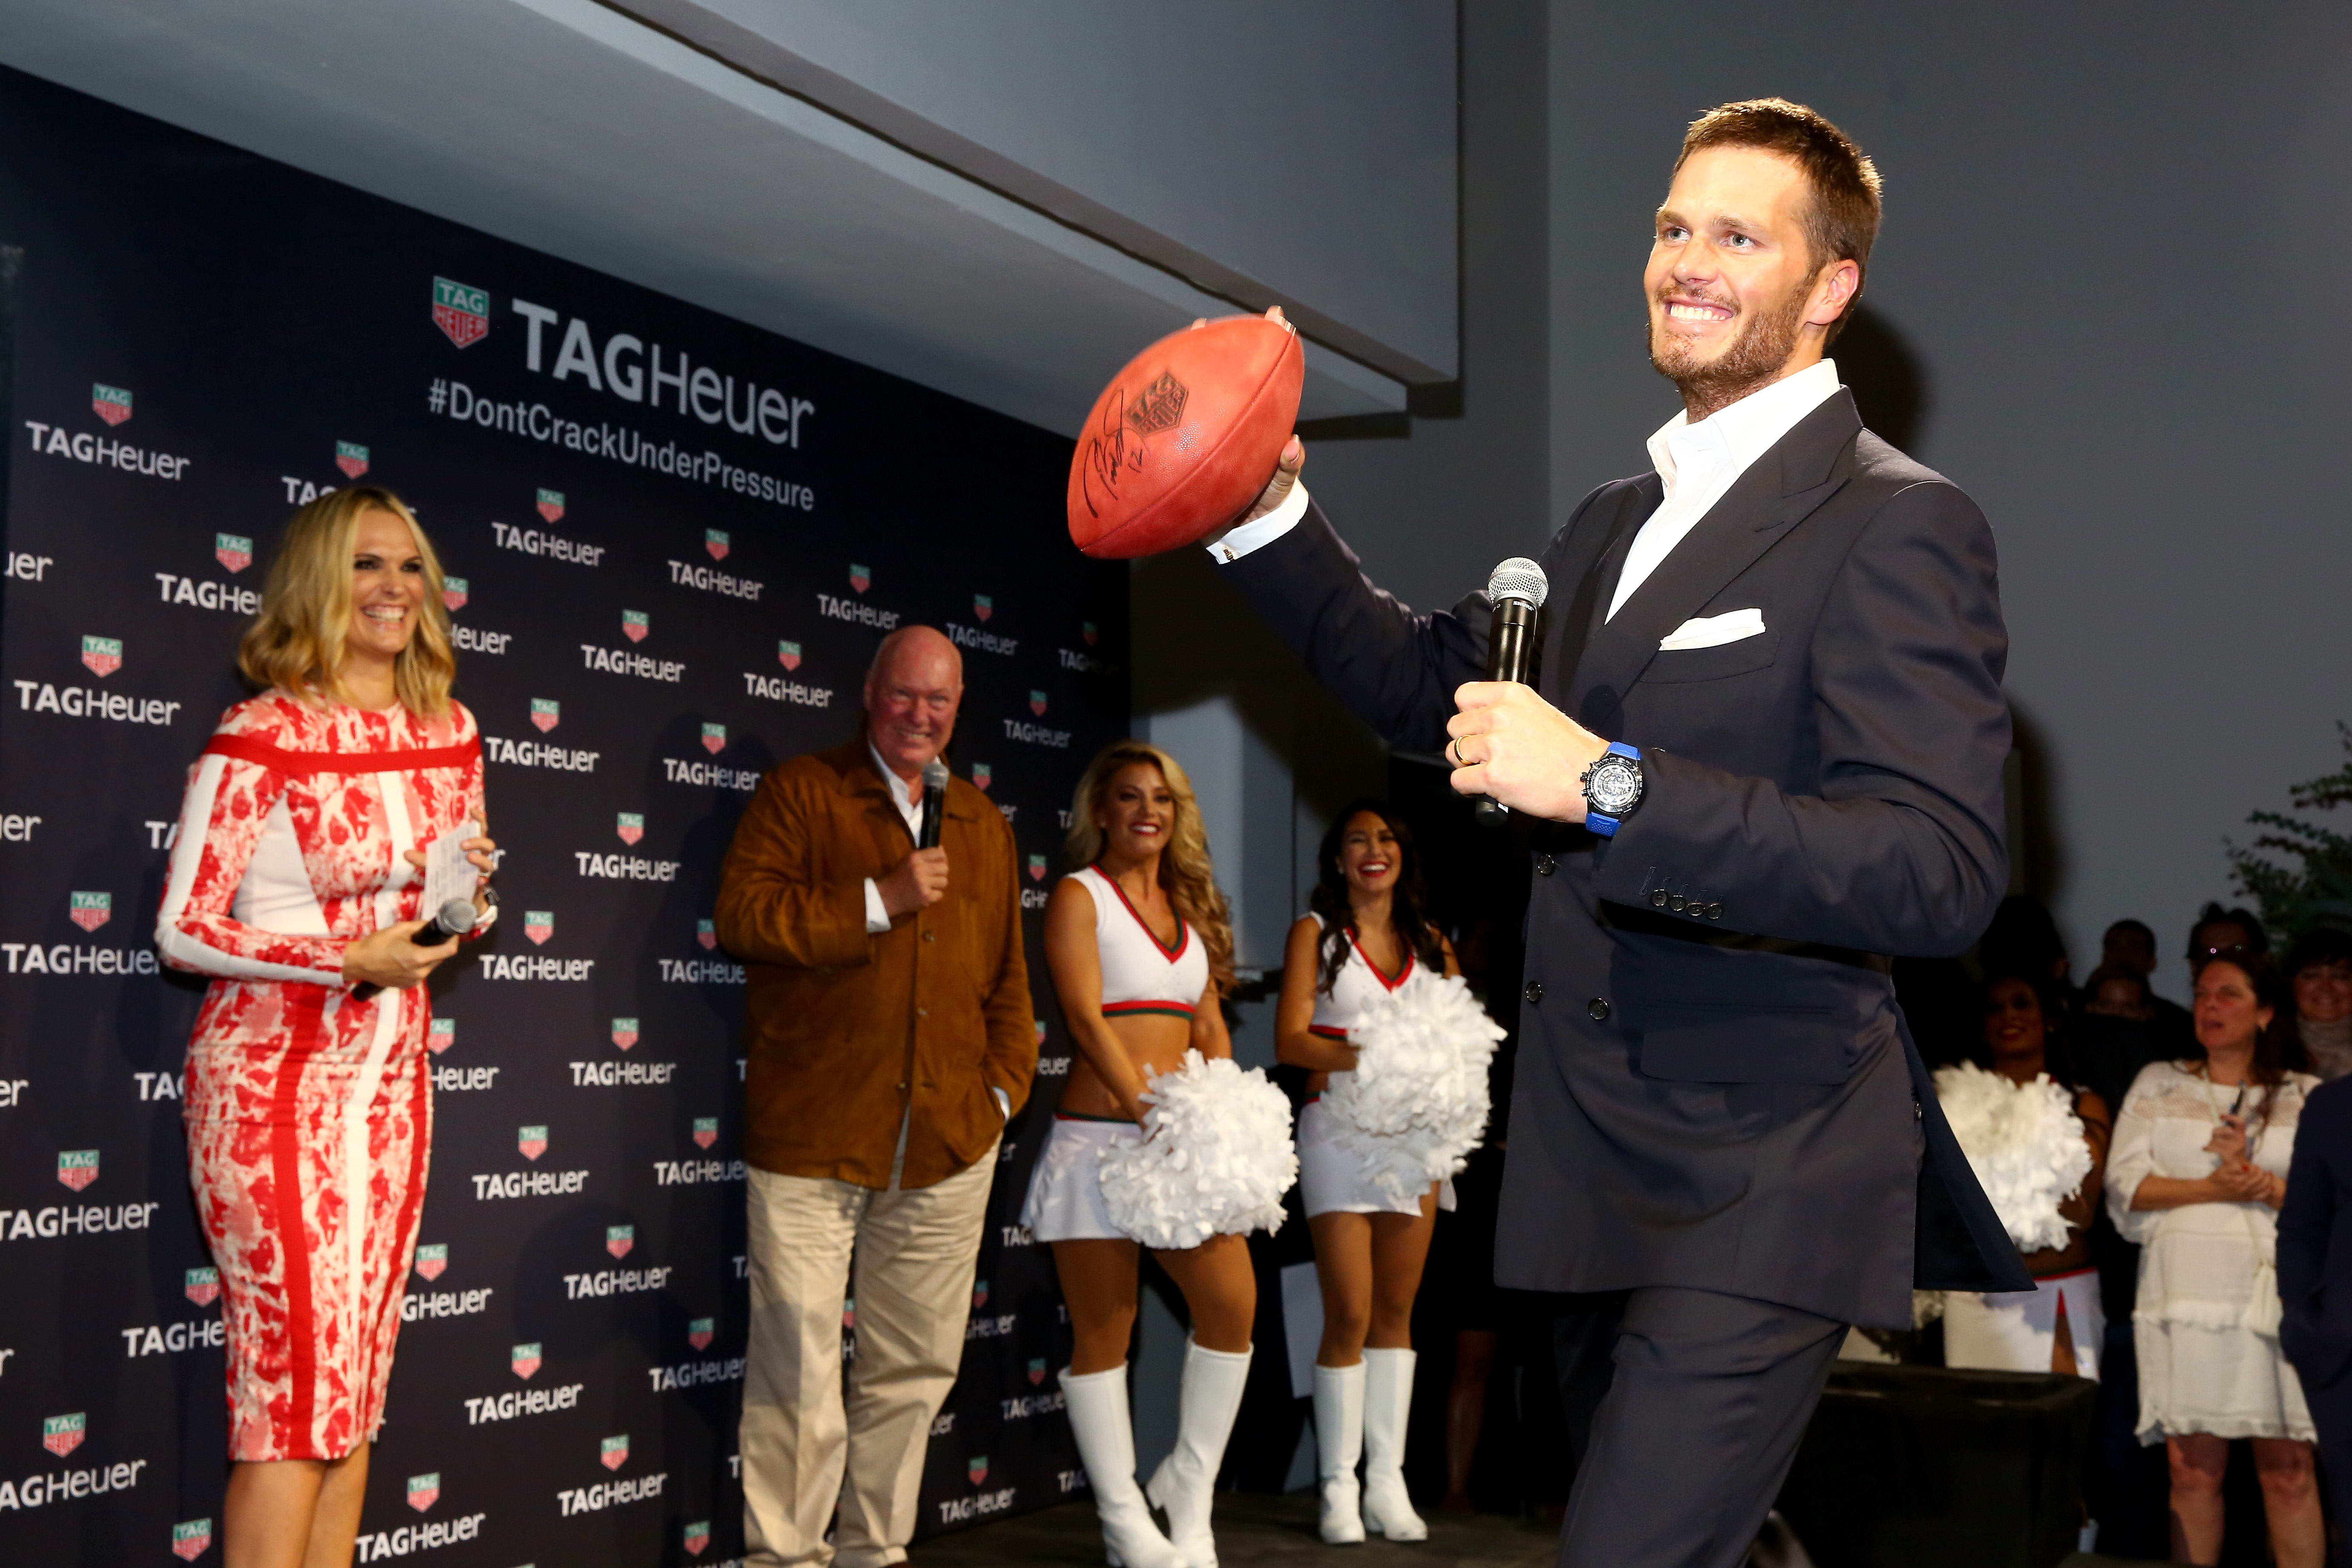 NEW YORK, NY - OCTOBER 13: (L-R) Molly Sims, Jean-Claude Biver and Tom Brady appear on stage as TAG Heuer announces Tom Brady as the new brand ambassador and launches the new Carrera - Heuer 01 on October 13, 2015 in New York City. (Photo by Astrid Stawiarz/Getty Images for TAG Heuer)